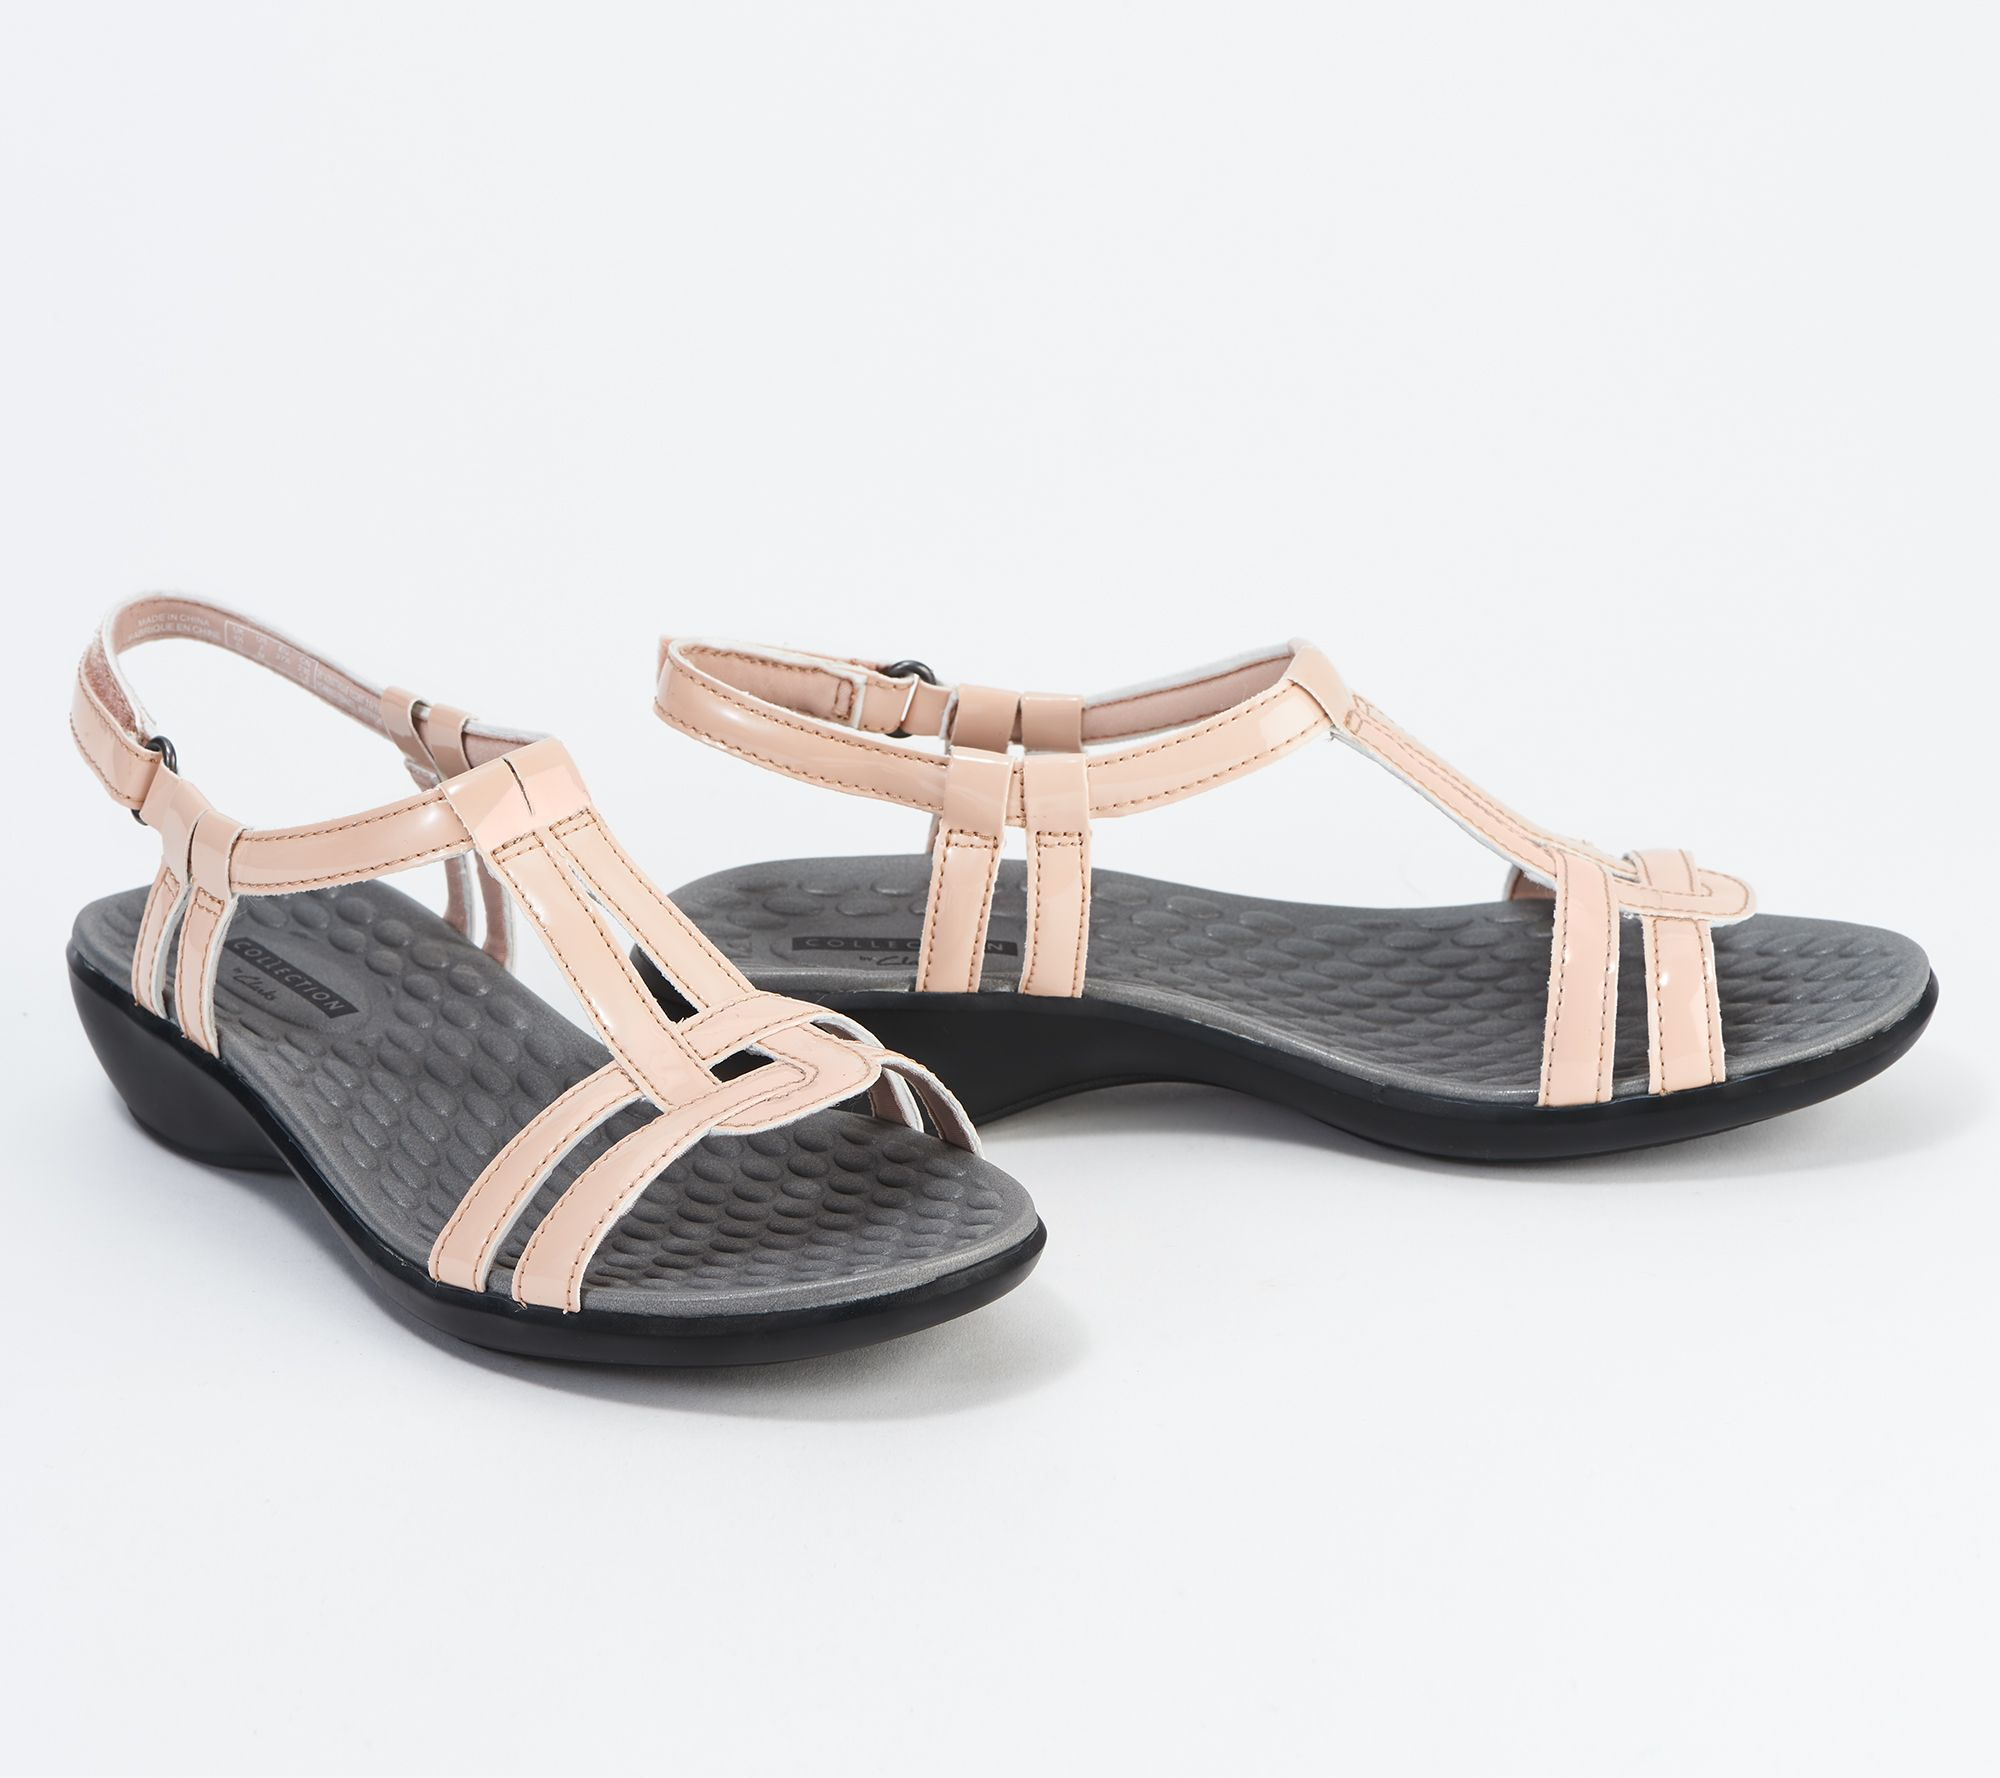 8d24f4b7187 Clarks Patent T-Strap Sandals - Sonar Aster - Page 1 — QVC.com